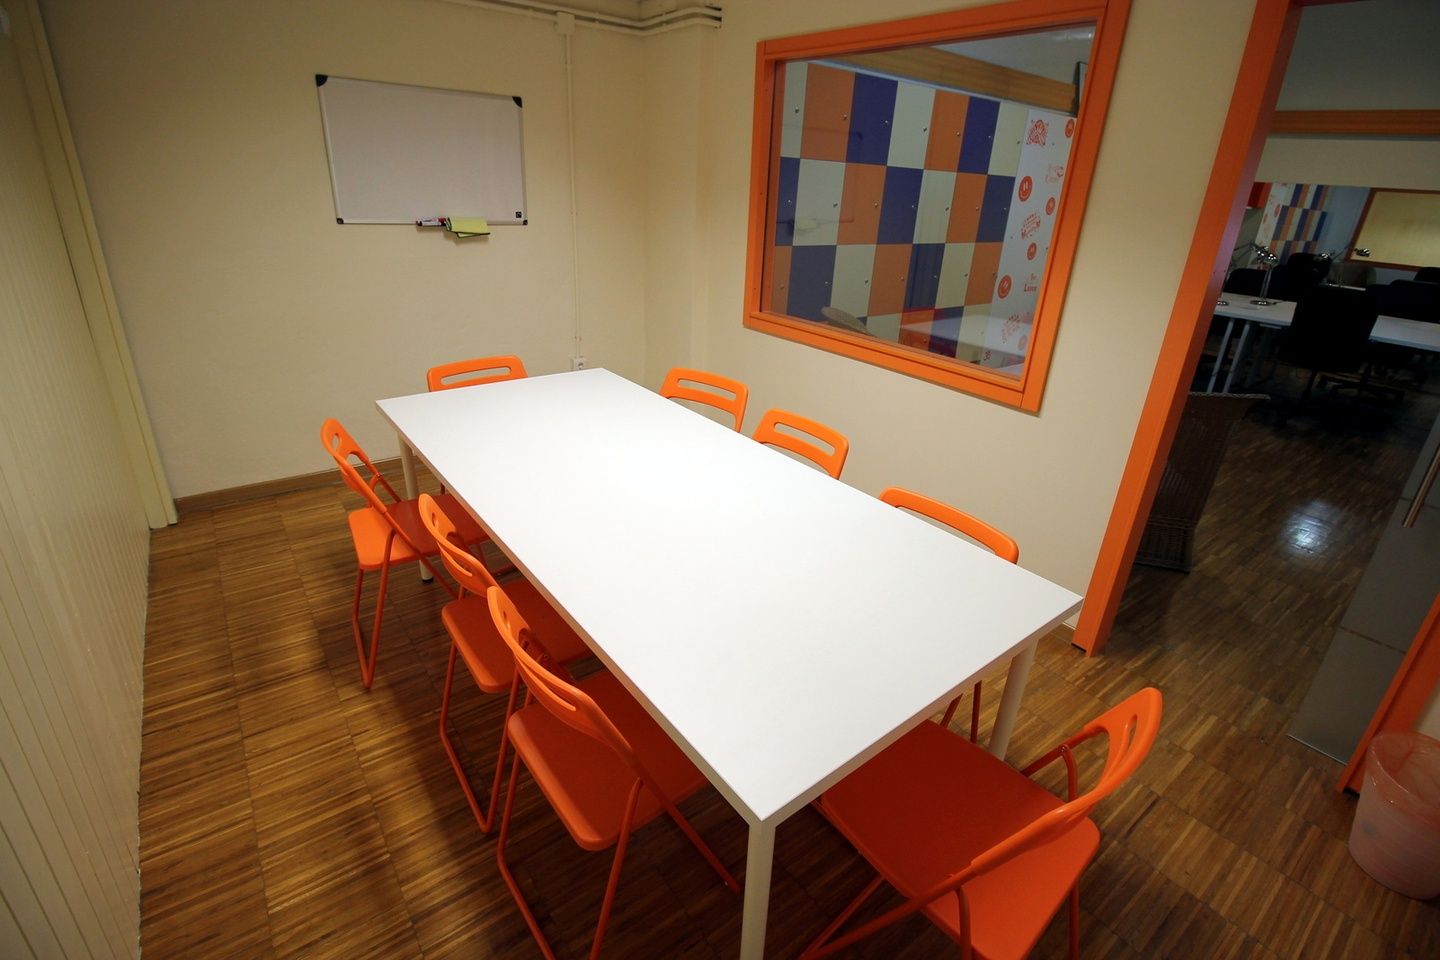 Malaga Train station meeting rooms Meetingraum Malaca XXI - Meeting Room image 1